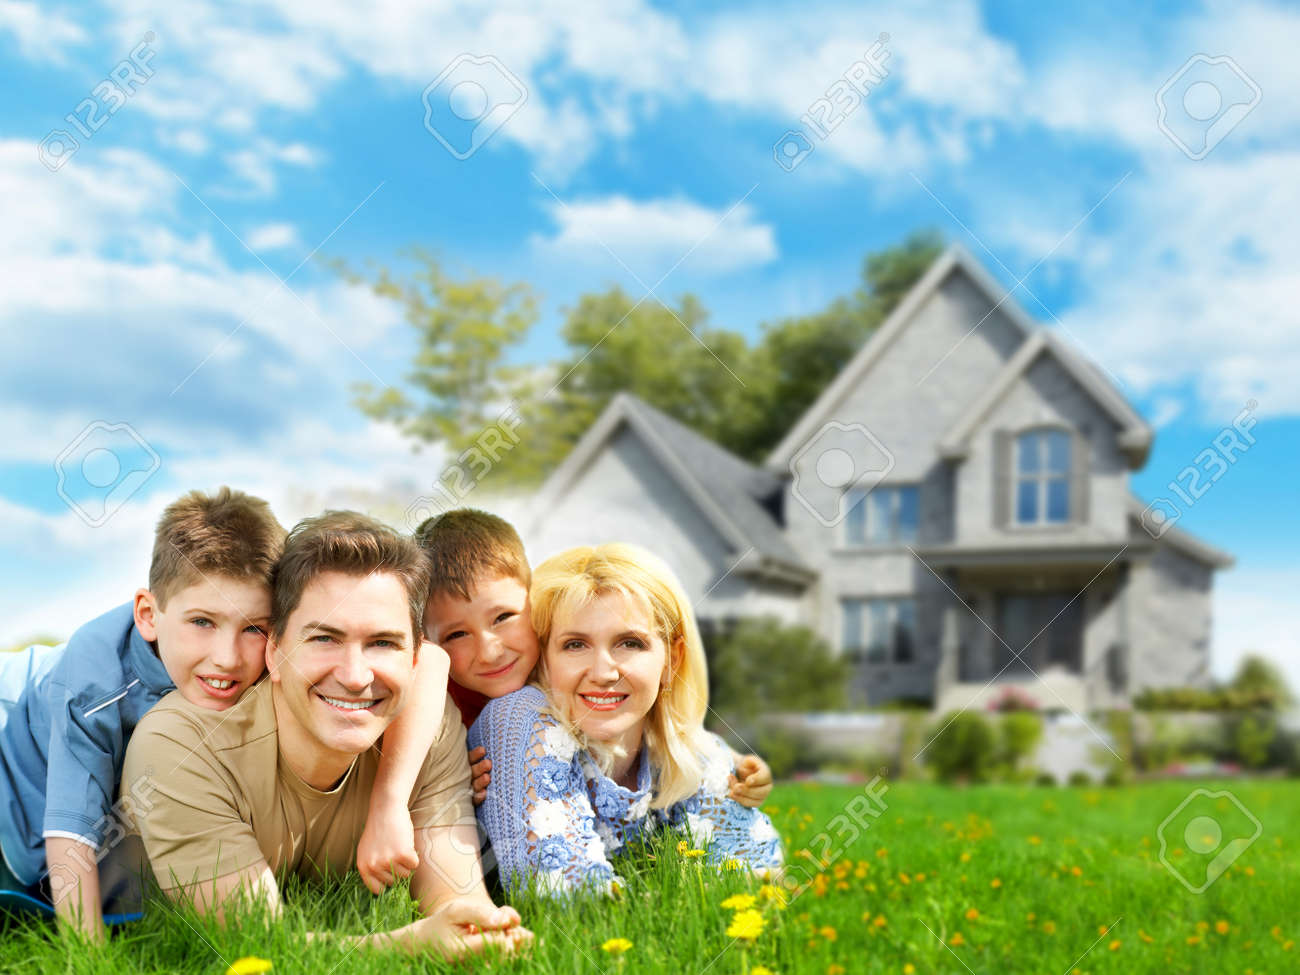 http://previews.123rf.com/images/kurhan/kurhan1410/kurhan141000111/32818471-Happy-family-near-new-home--Stock-Photo.jpg